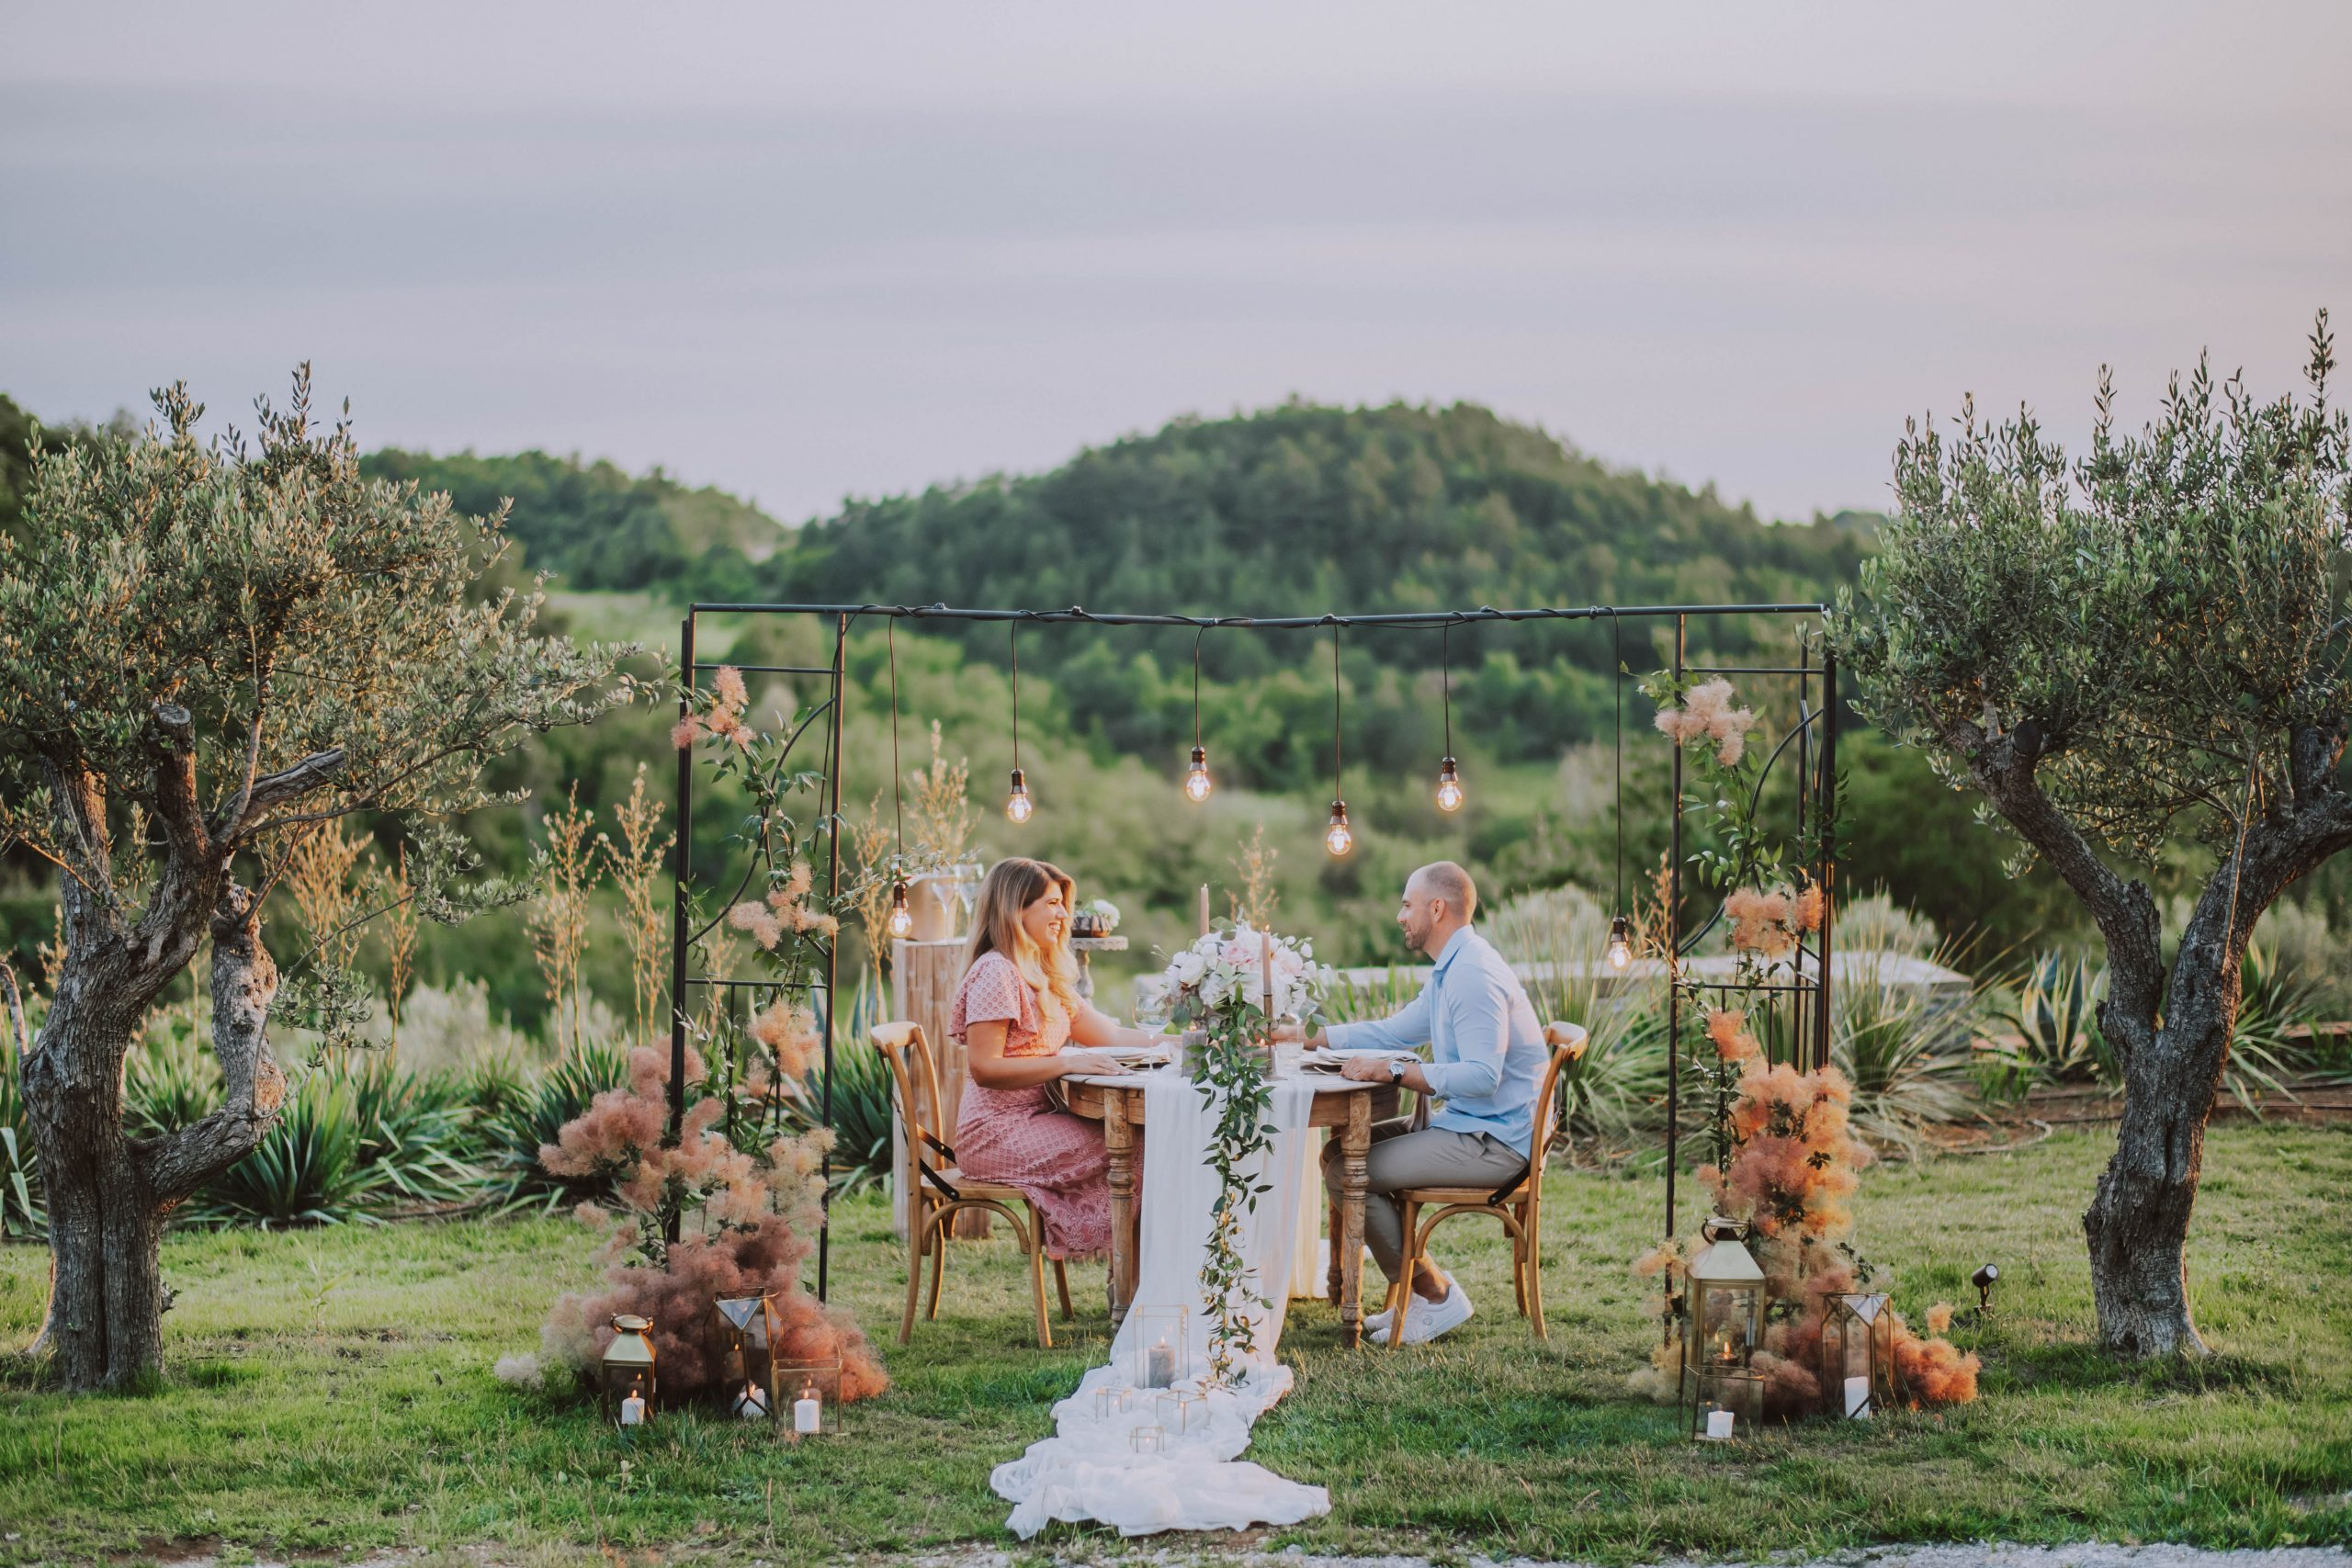 Surprise proposal and engagement in Istria